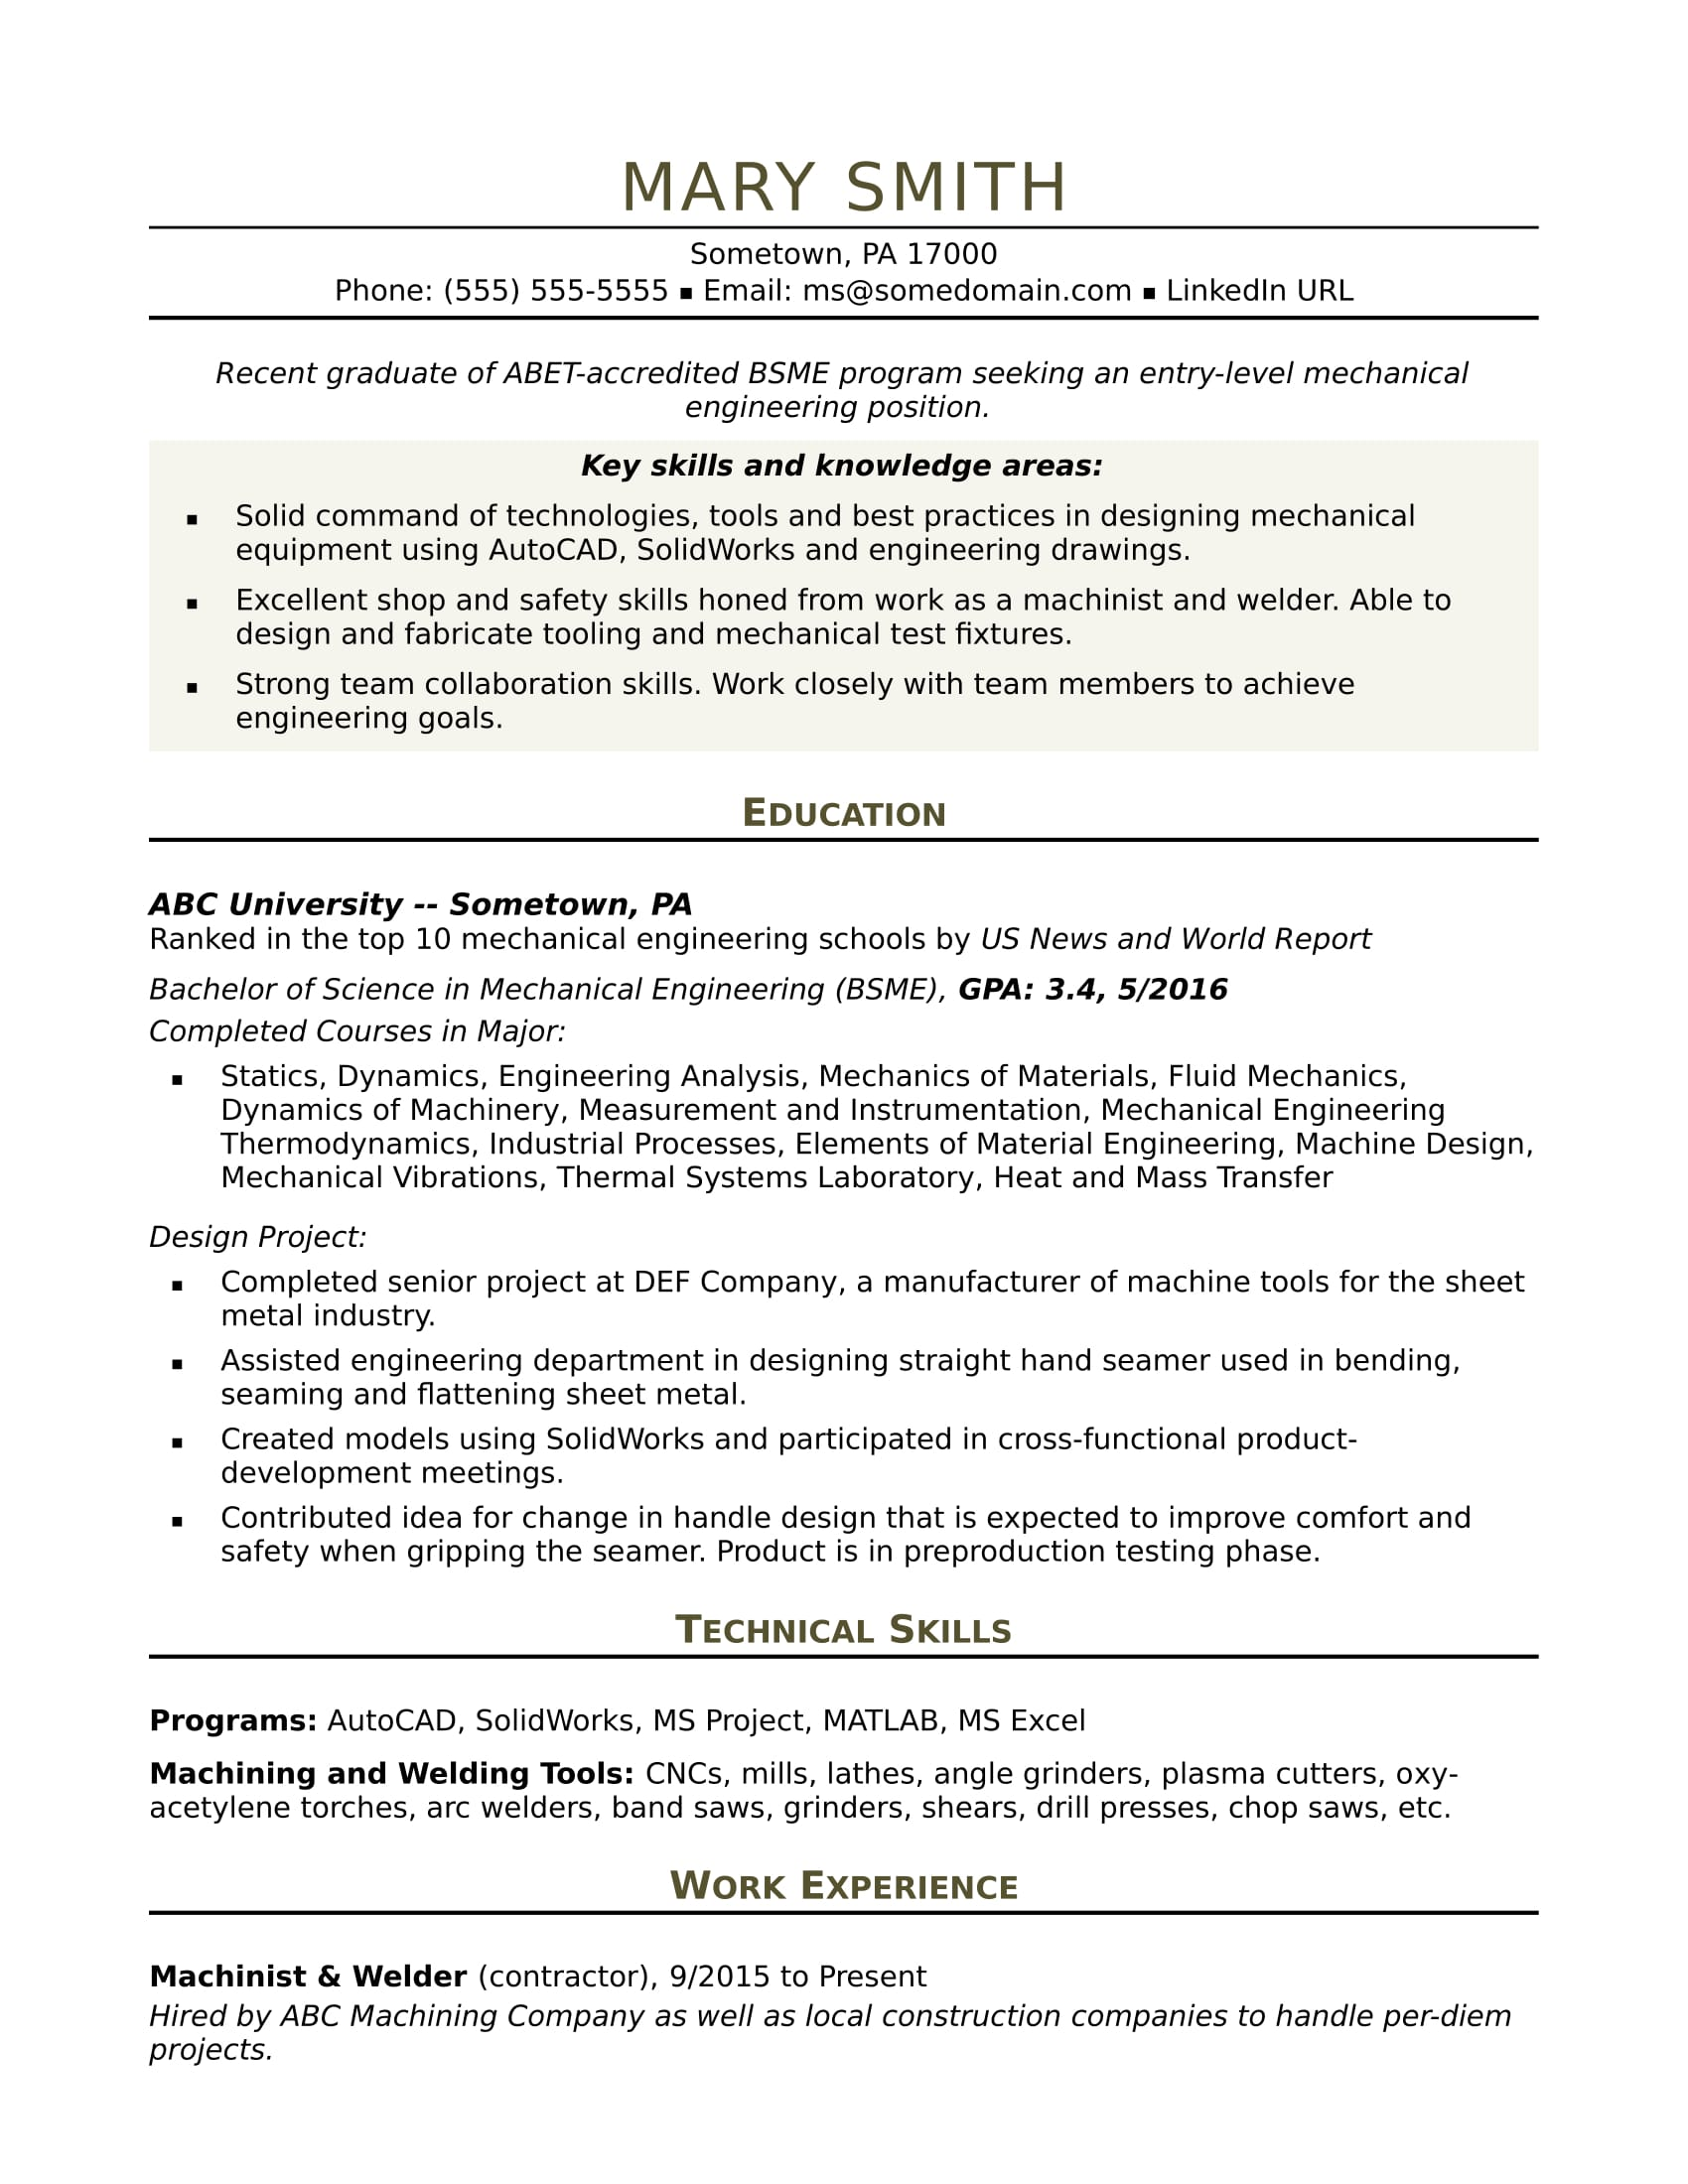 sample resume for an entry level mechanical engineer monster template human resources job Resume Mechanical Engineer Resume Template